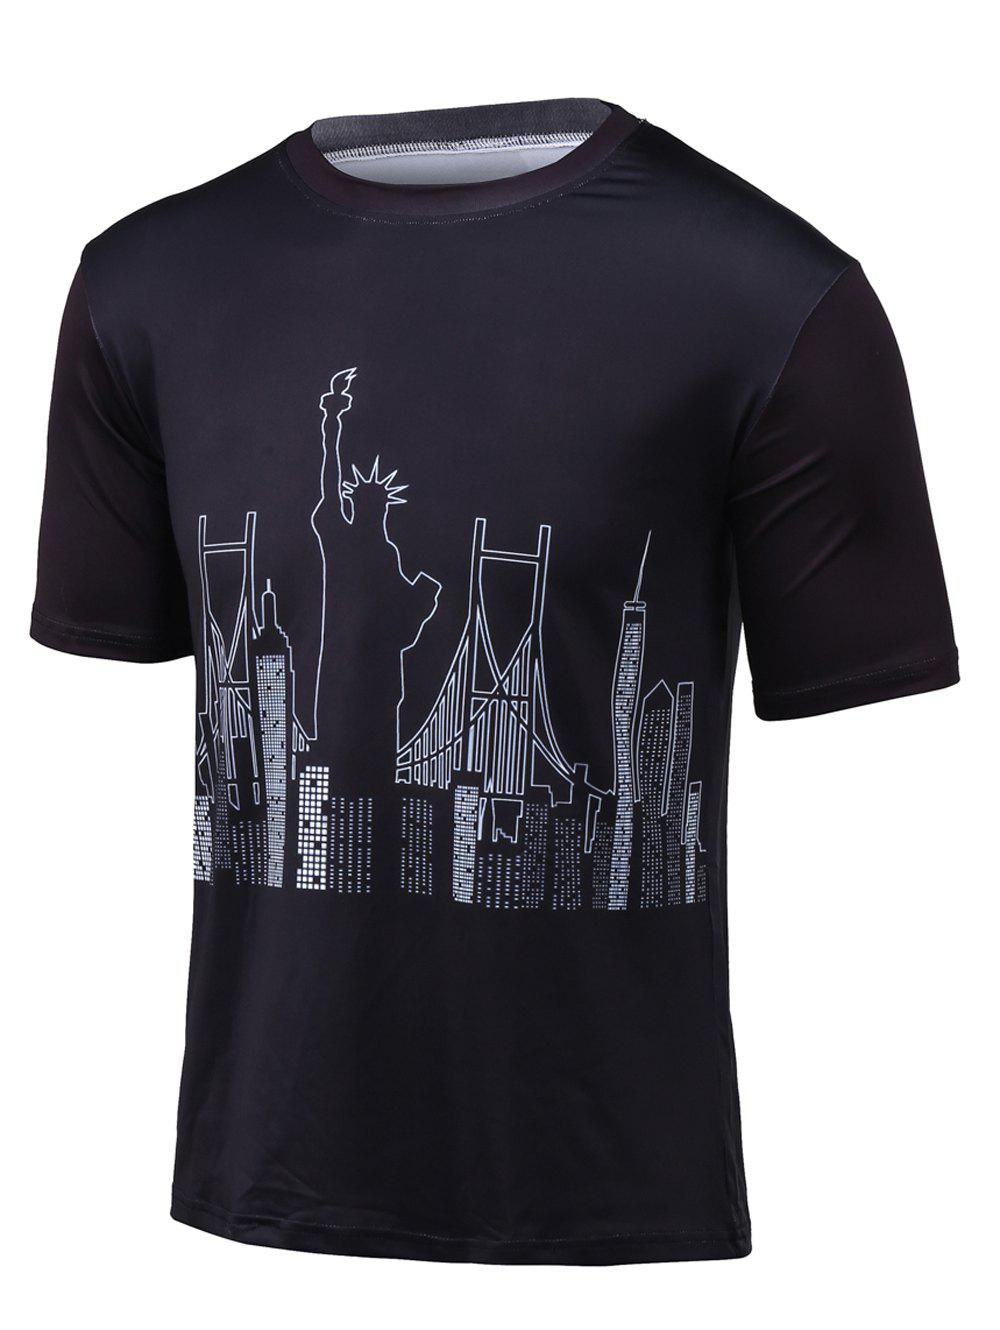 Statue of Liberty Print Round Neck Short Sleeve T-Shirt - BLACK L